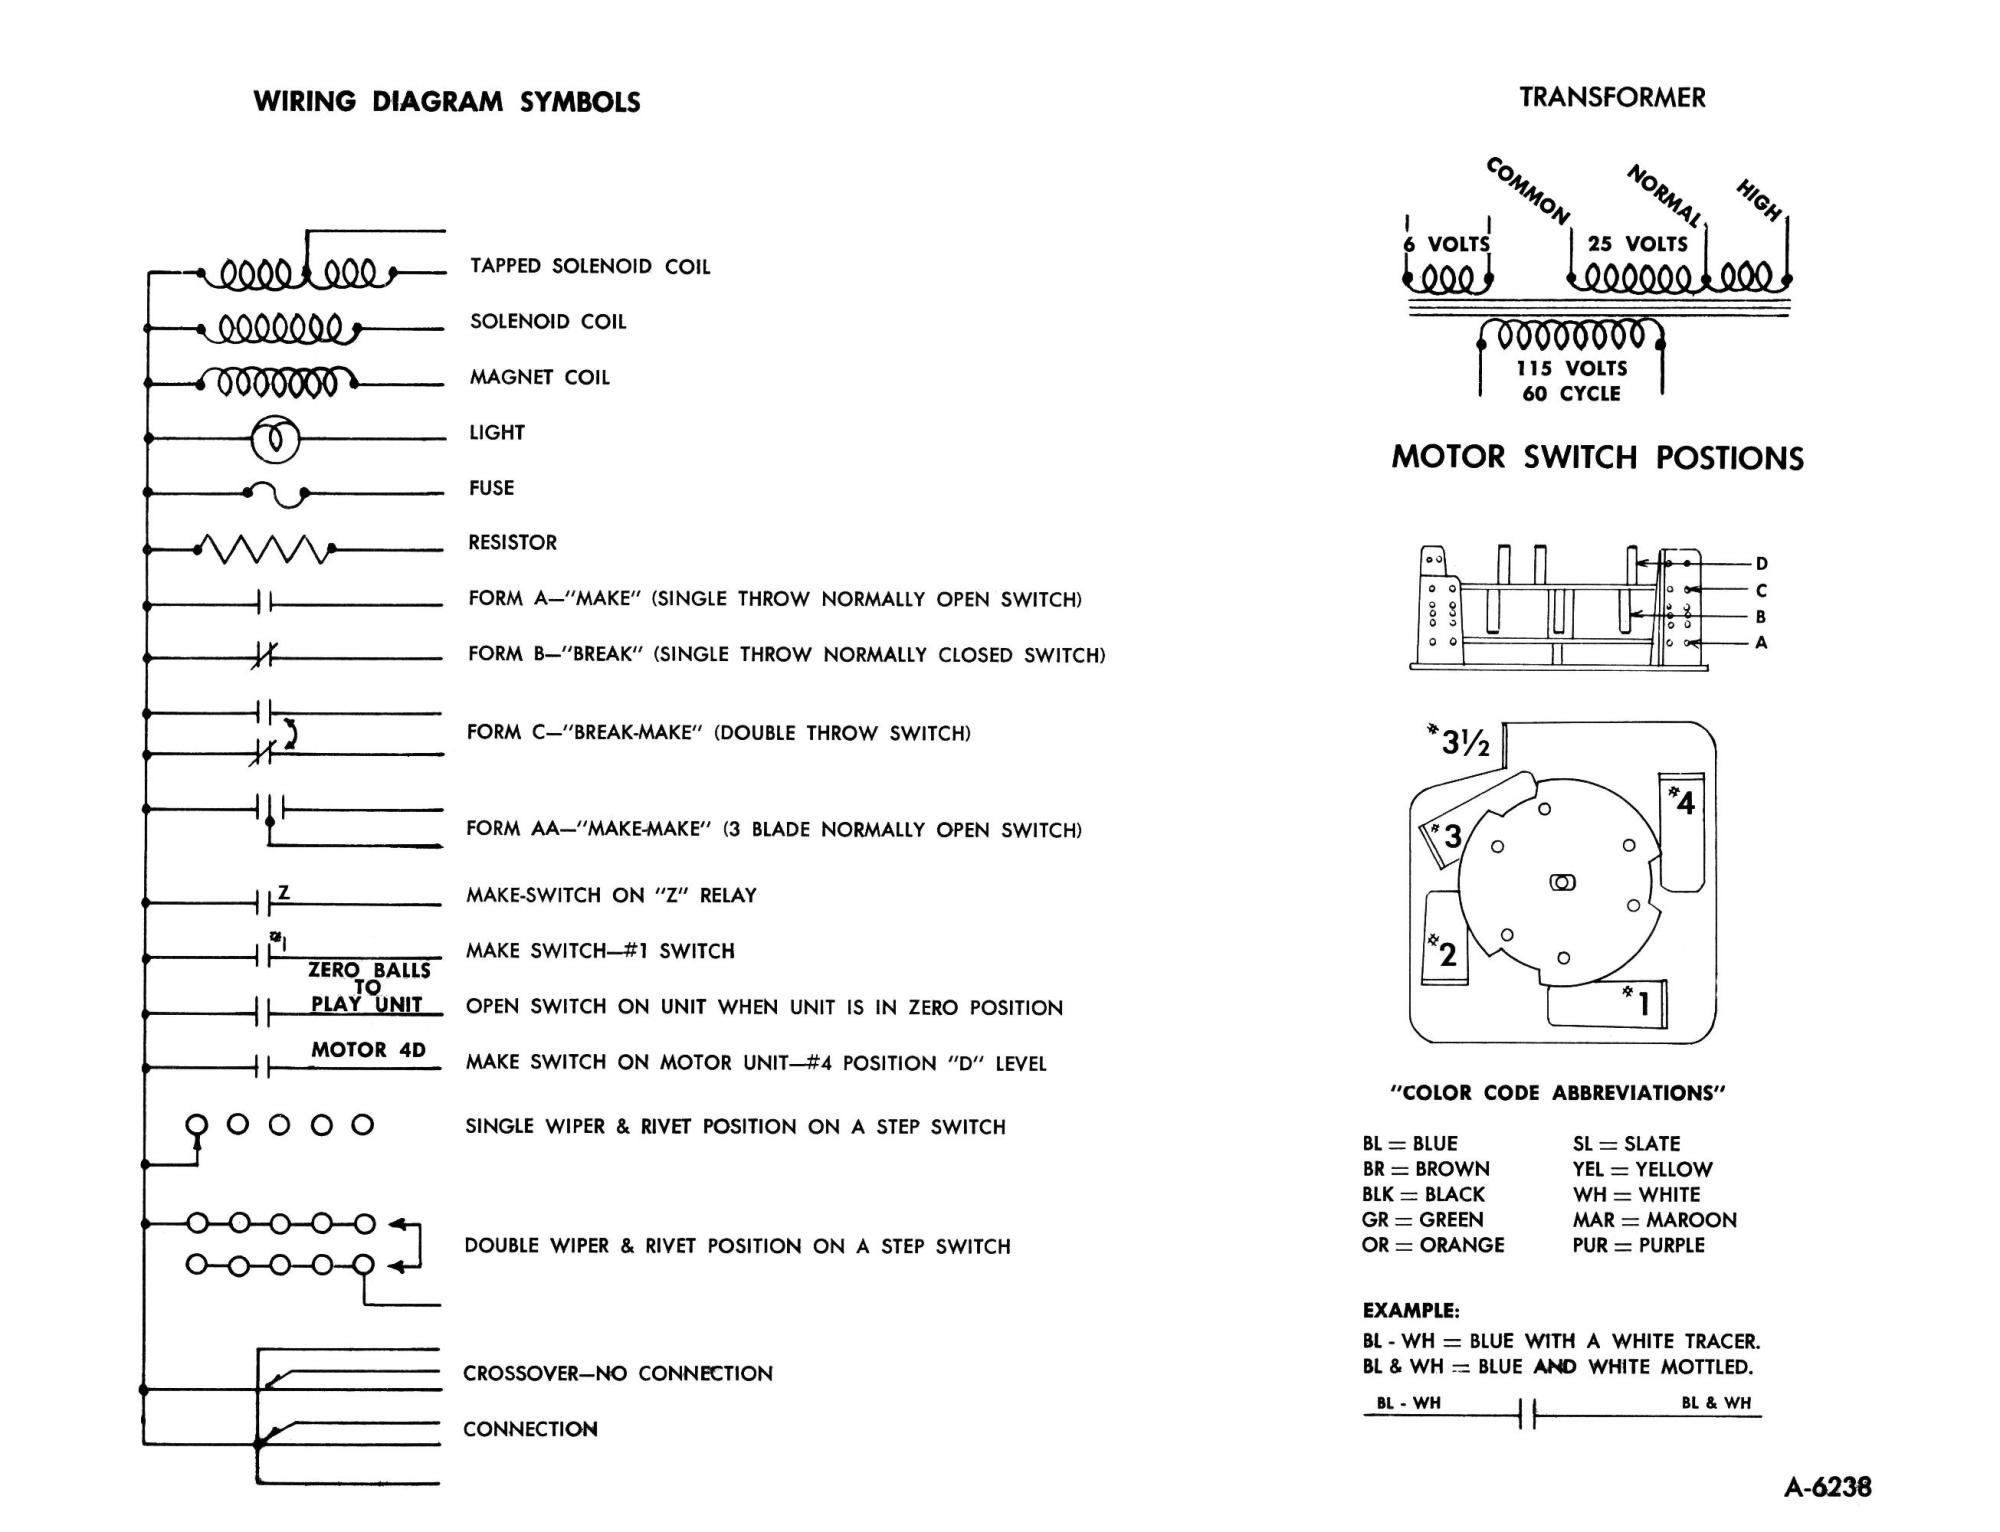 hight resolution of wiring diagram symbols a 6238